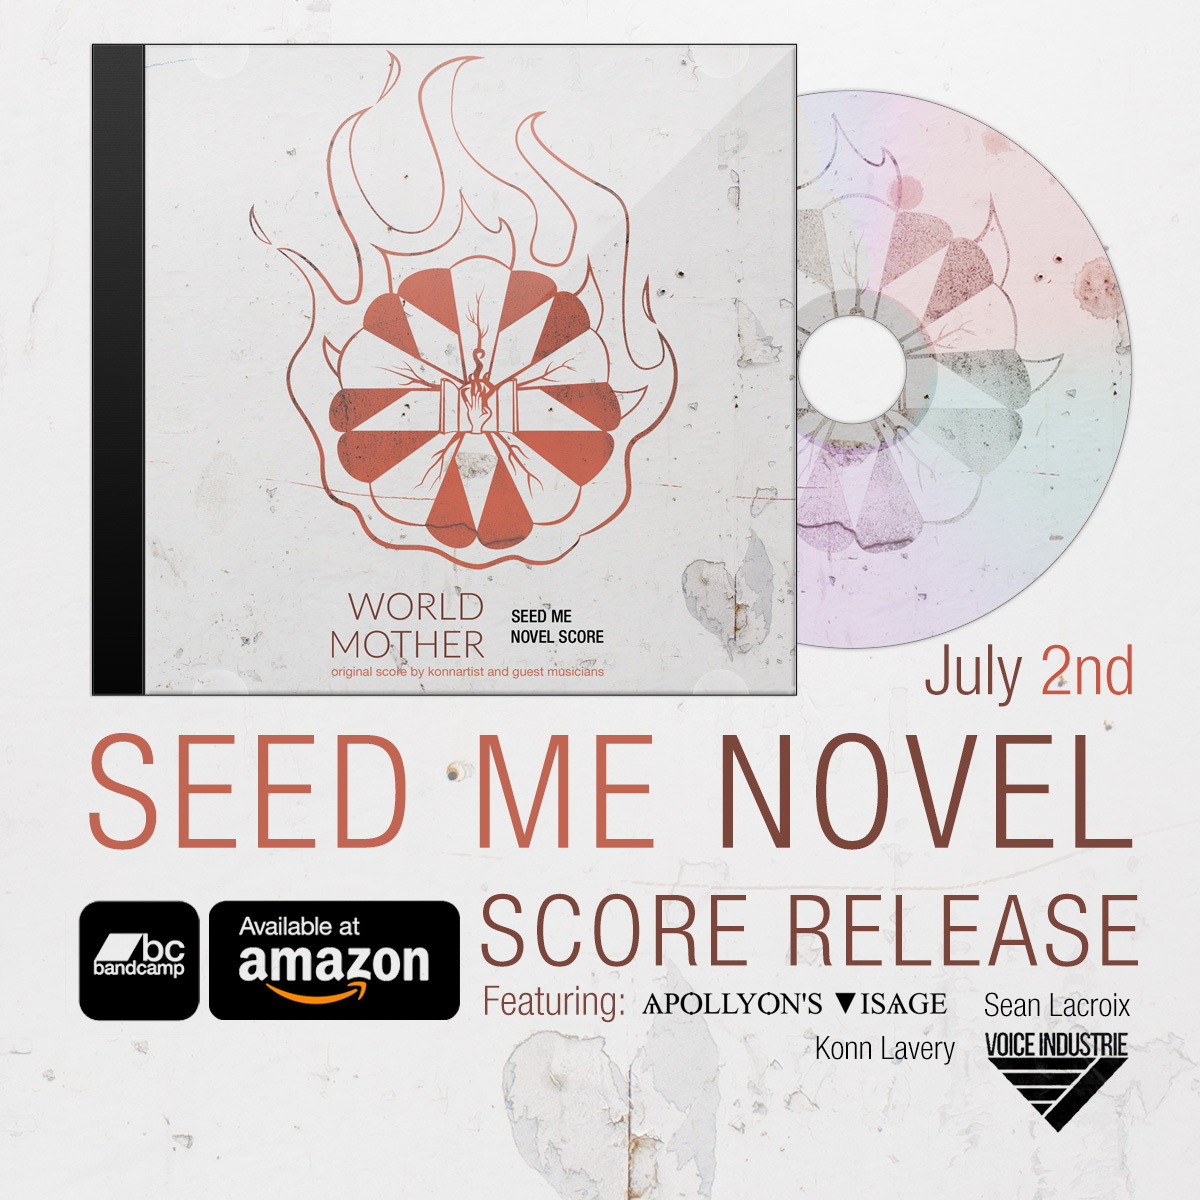 World Mother: Seed Me Novel Score Release